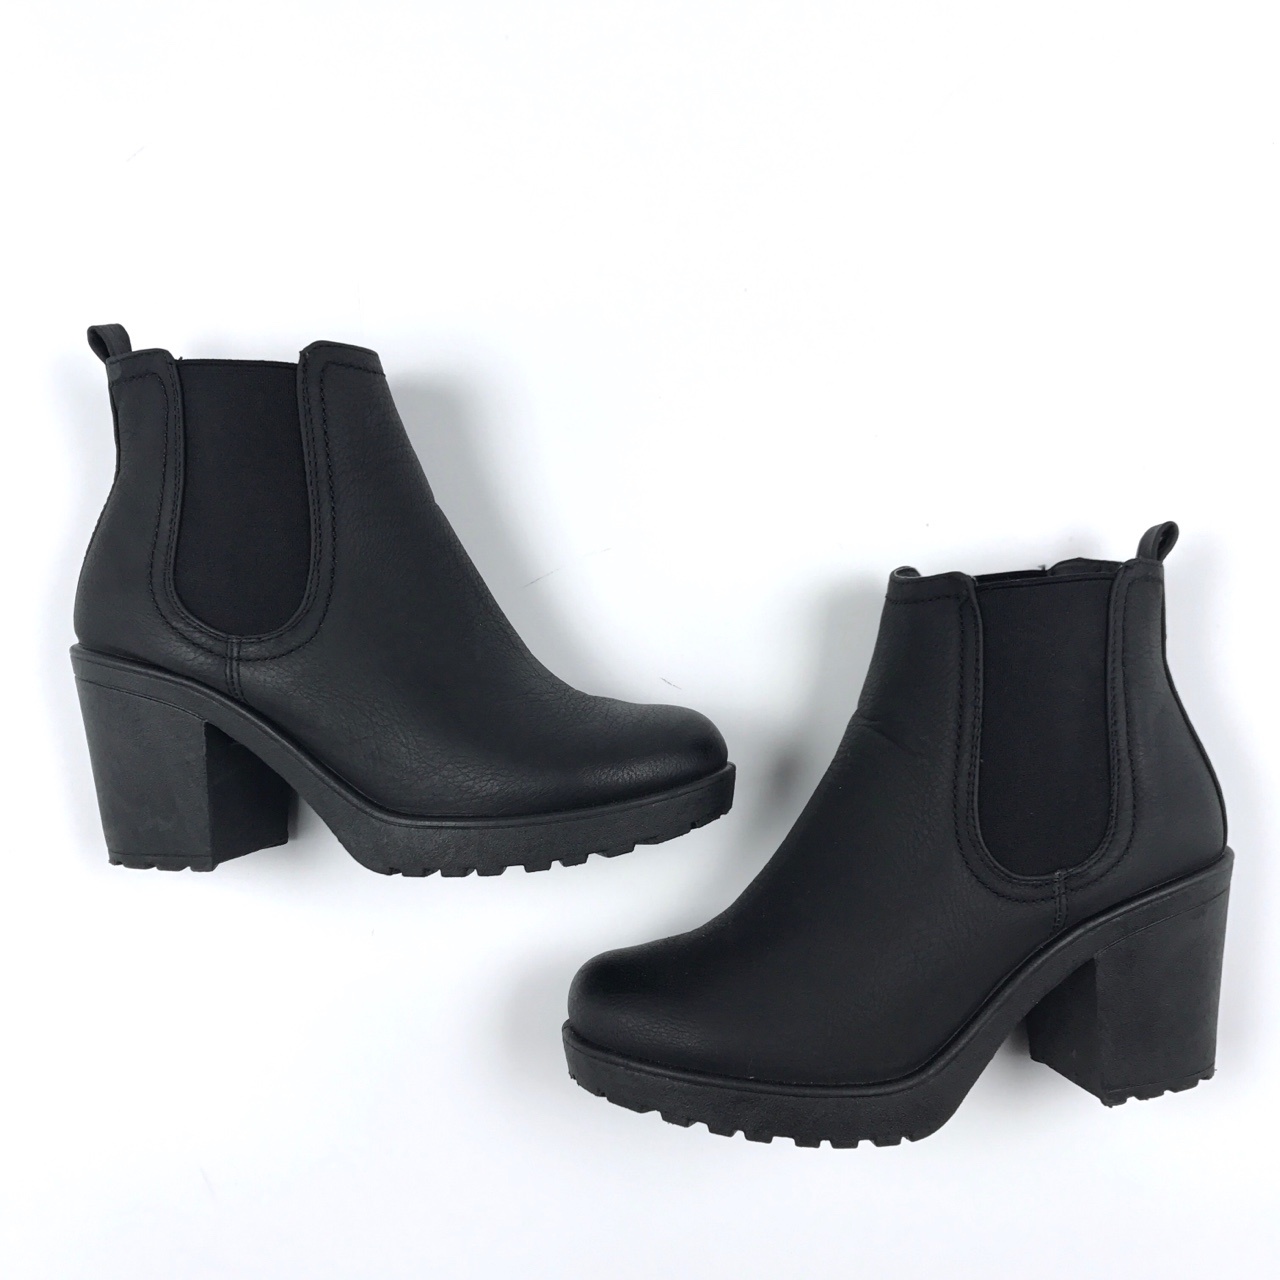 2bc34d5c148 Tia Chunky Cleated Heel Chelsea Boot. The brand is... - Depop